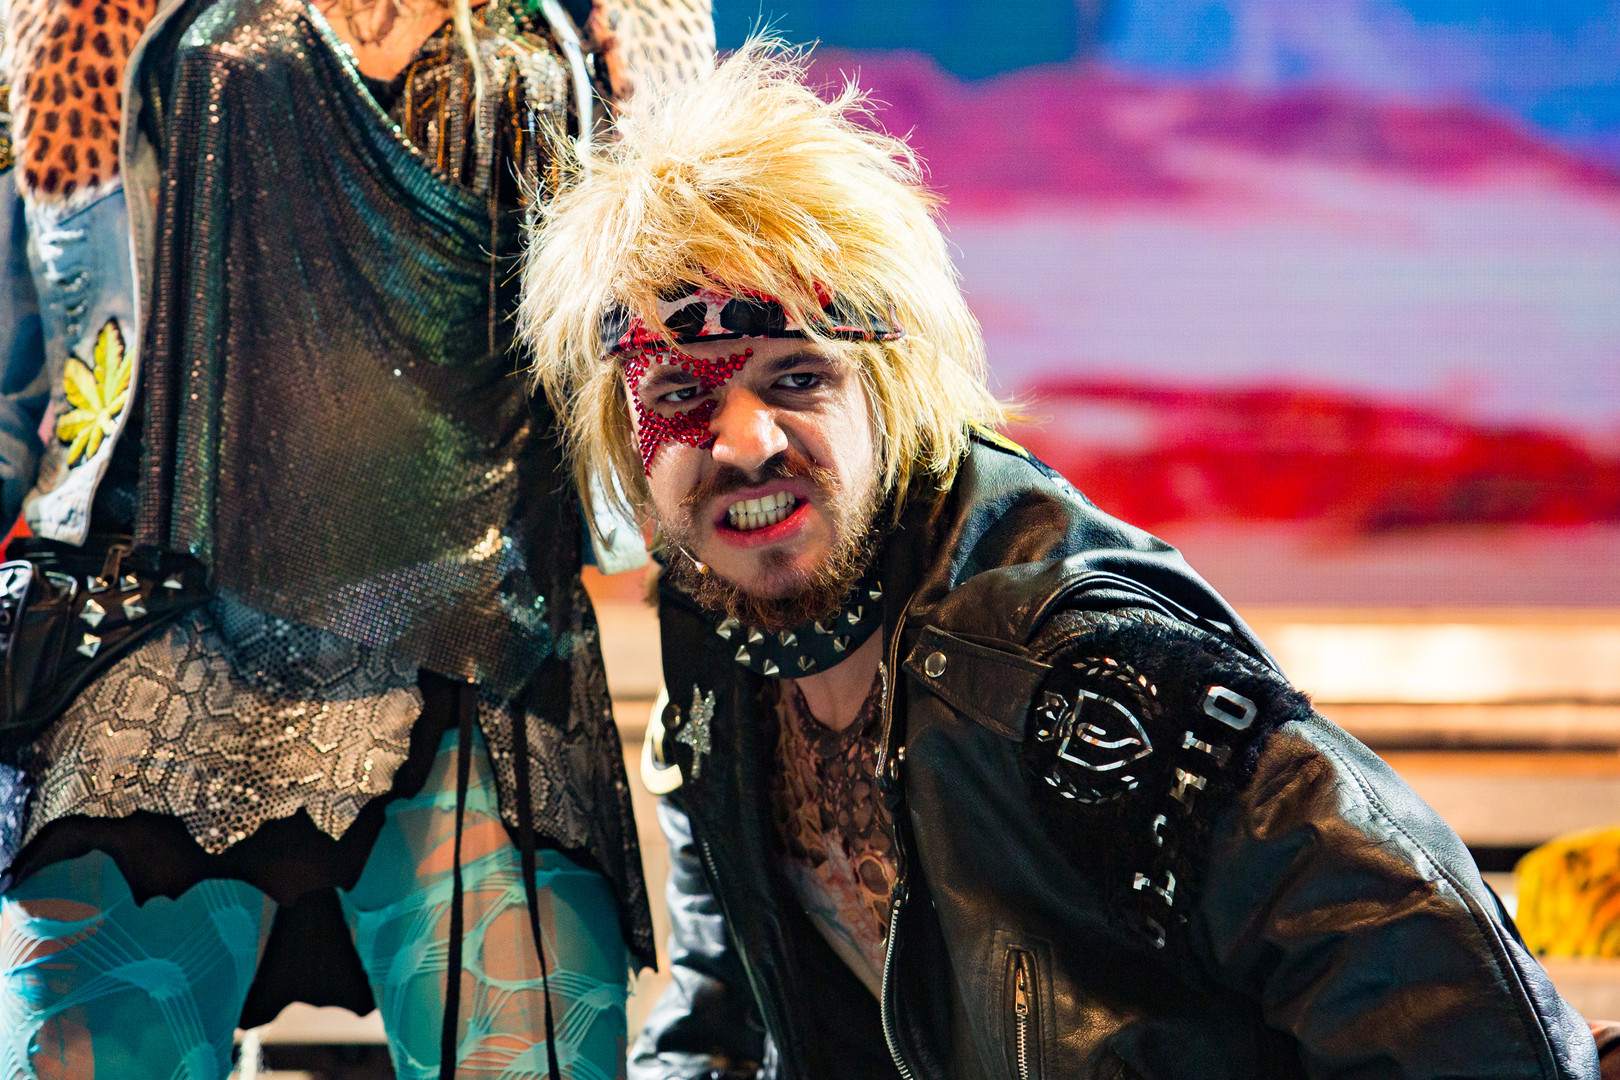 We Will Rock You 11 apr 2019-9397.jpg